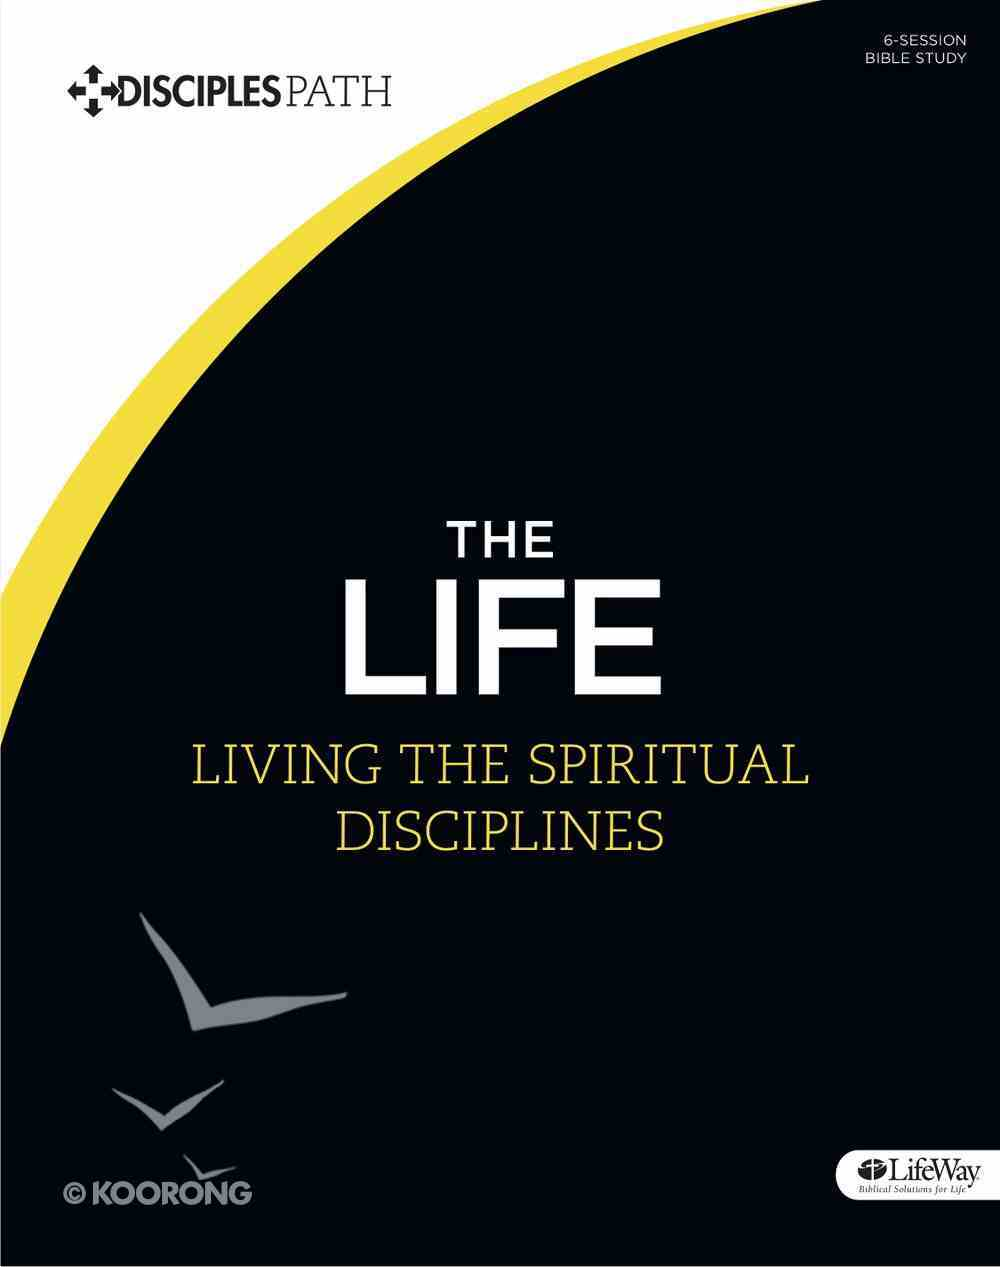 The Life (Bible Study Book) (Disciple's Path Series) Paperback